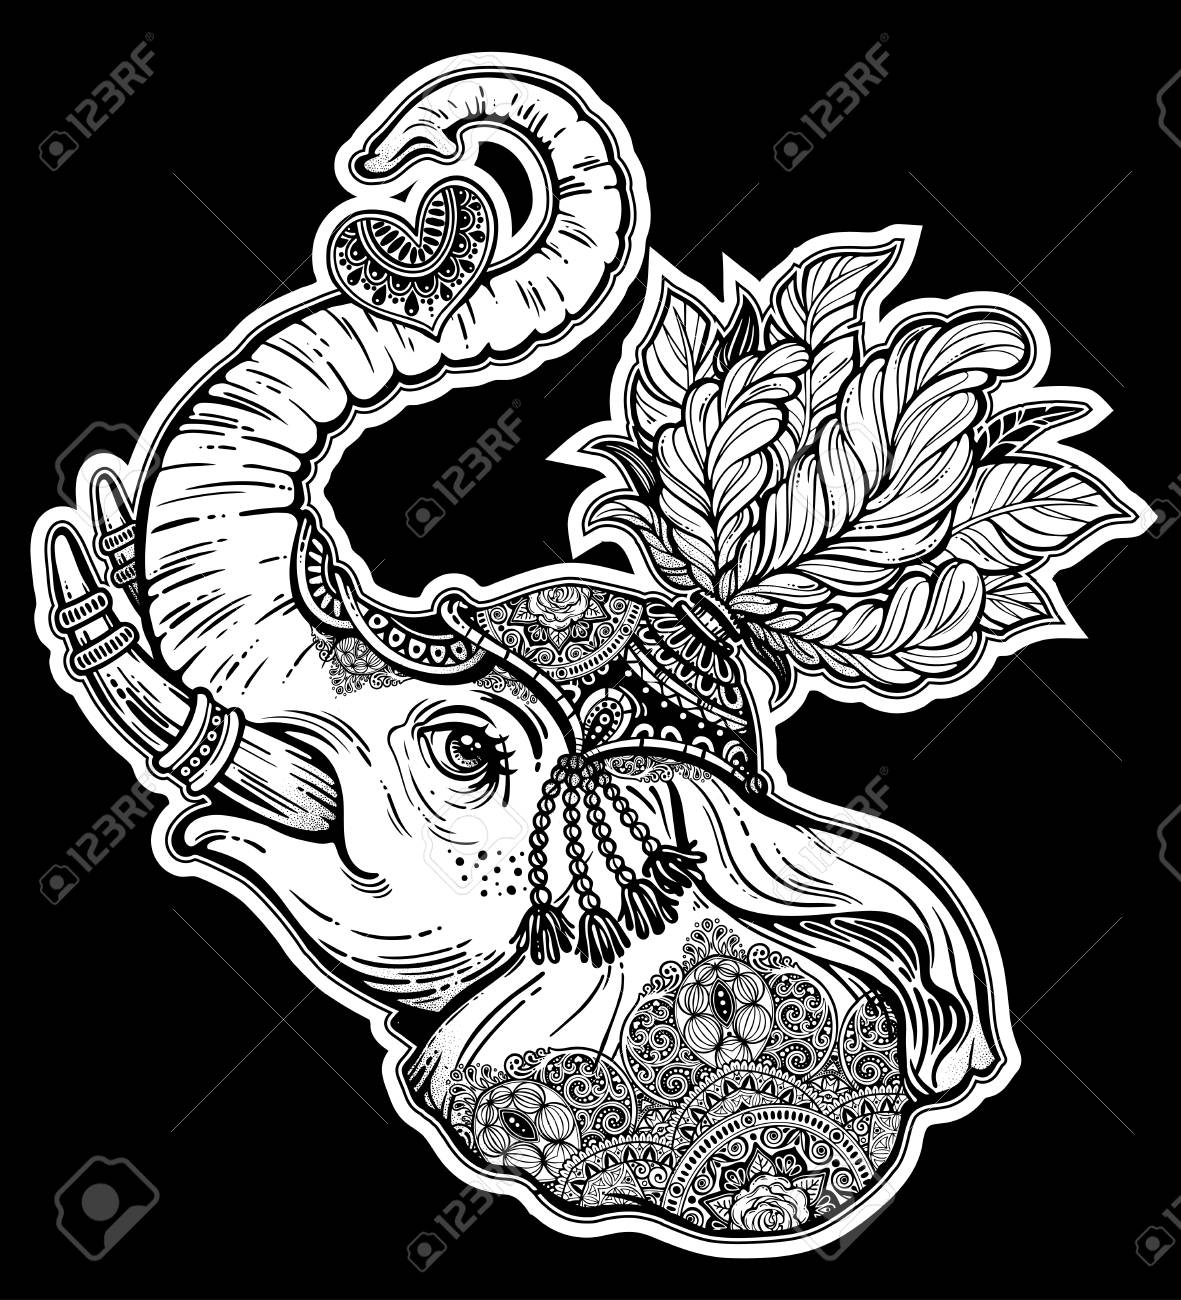 Elephant Face Portrait With Ethnic Ornament Holding A Heart African Indian Arab Tribal